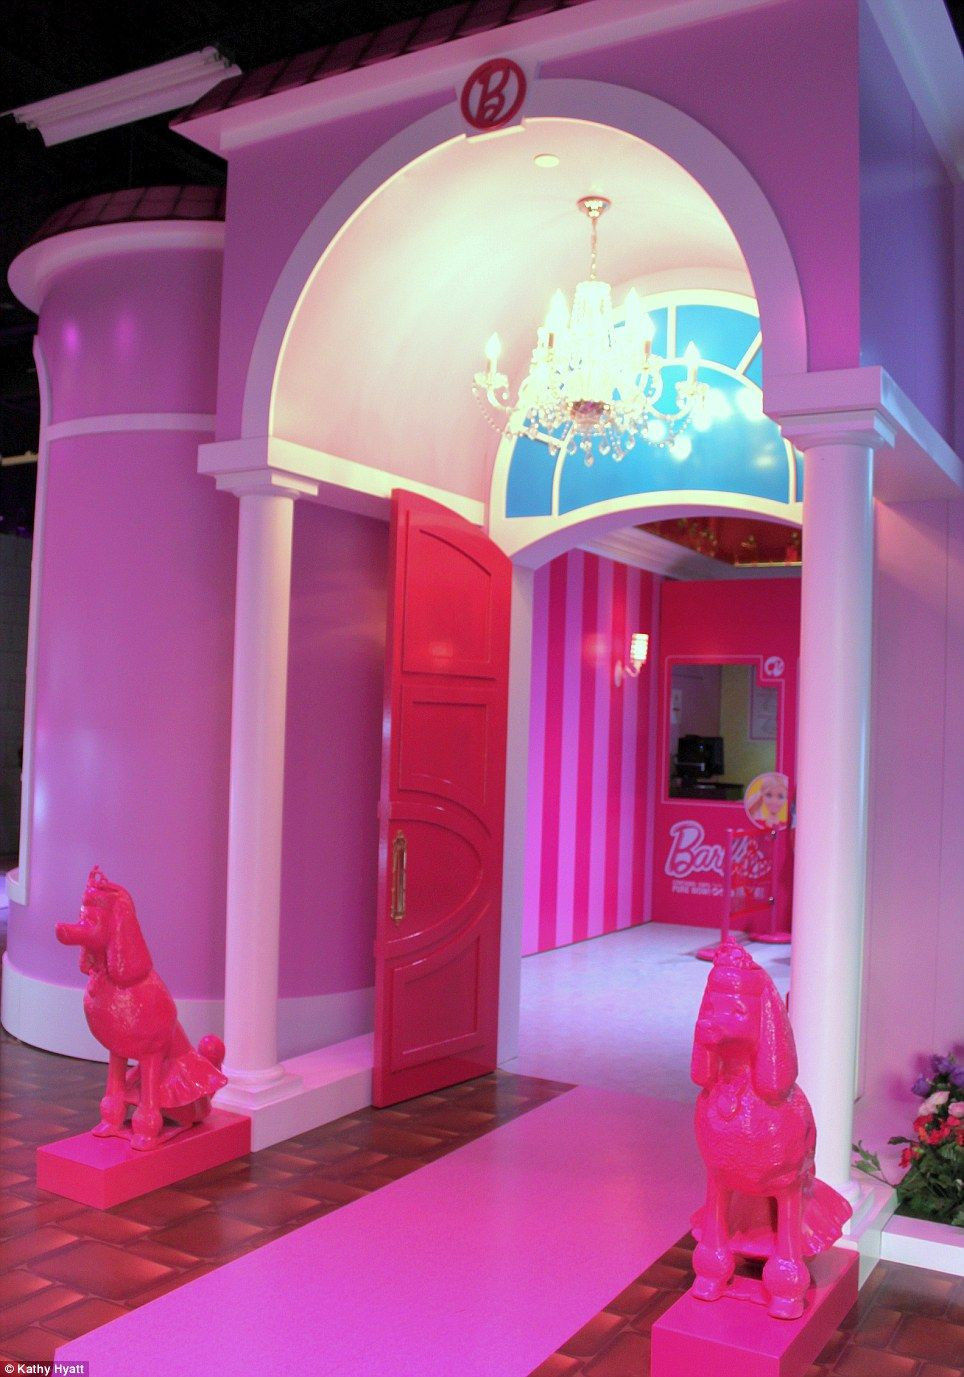 Barbie dream house on pinterest barbie bedroom barbie bathroom and barbie house Dream house builder